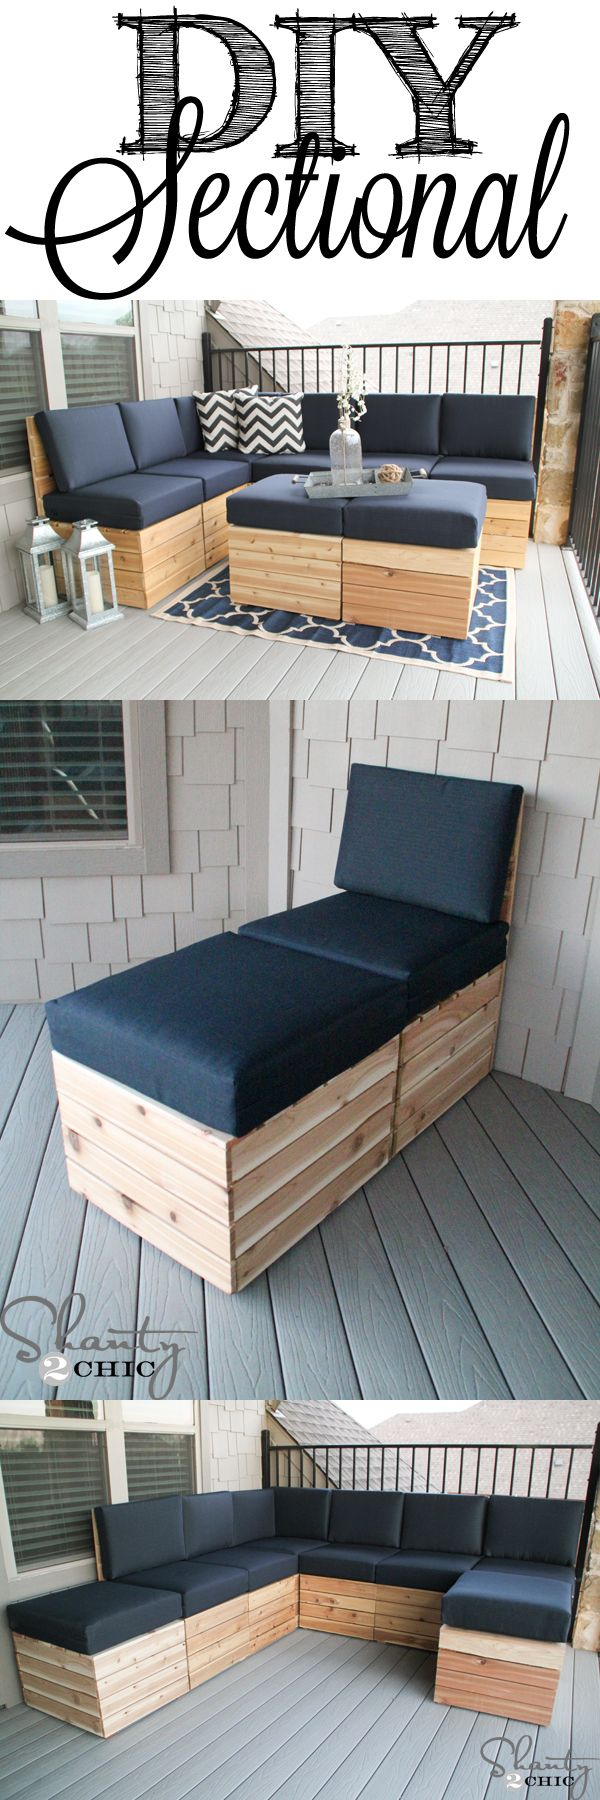 Easy to build modular seating! Mix and match to fit any space!